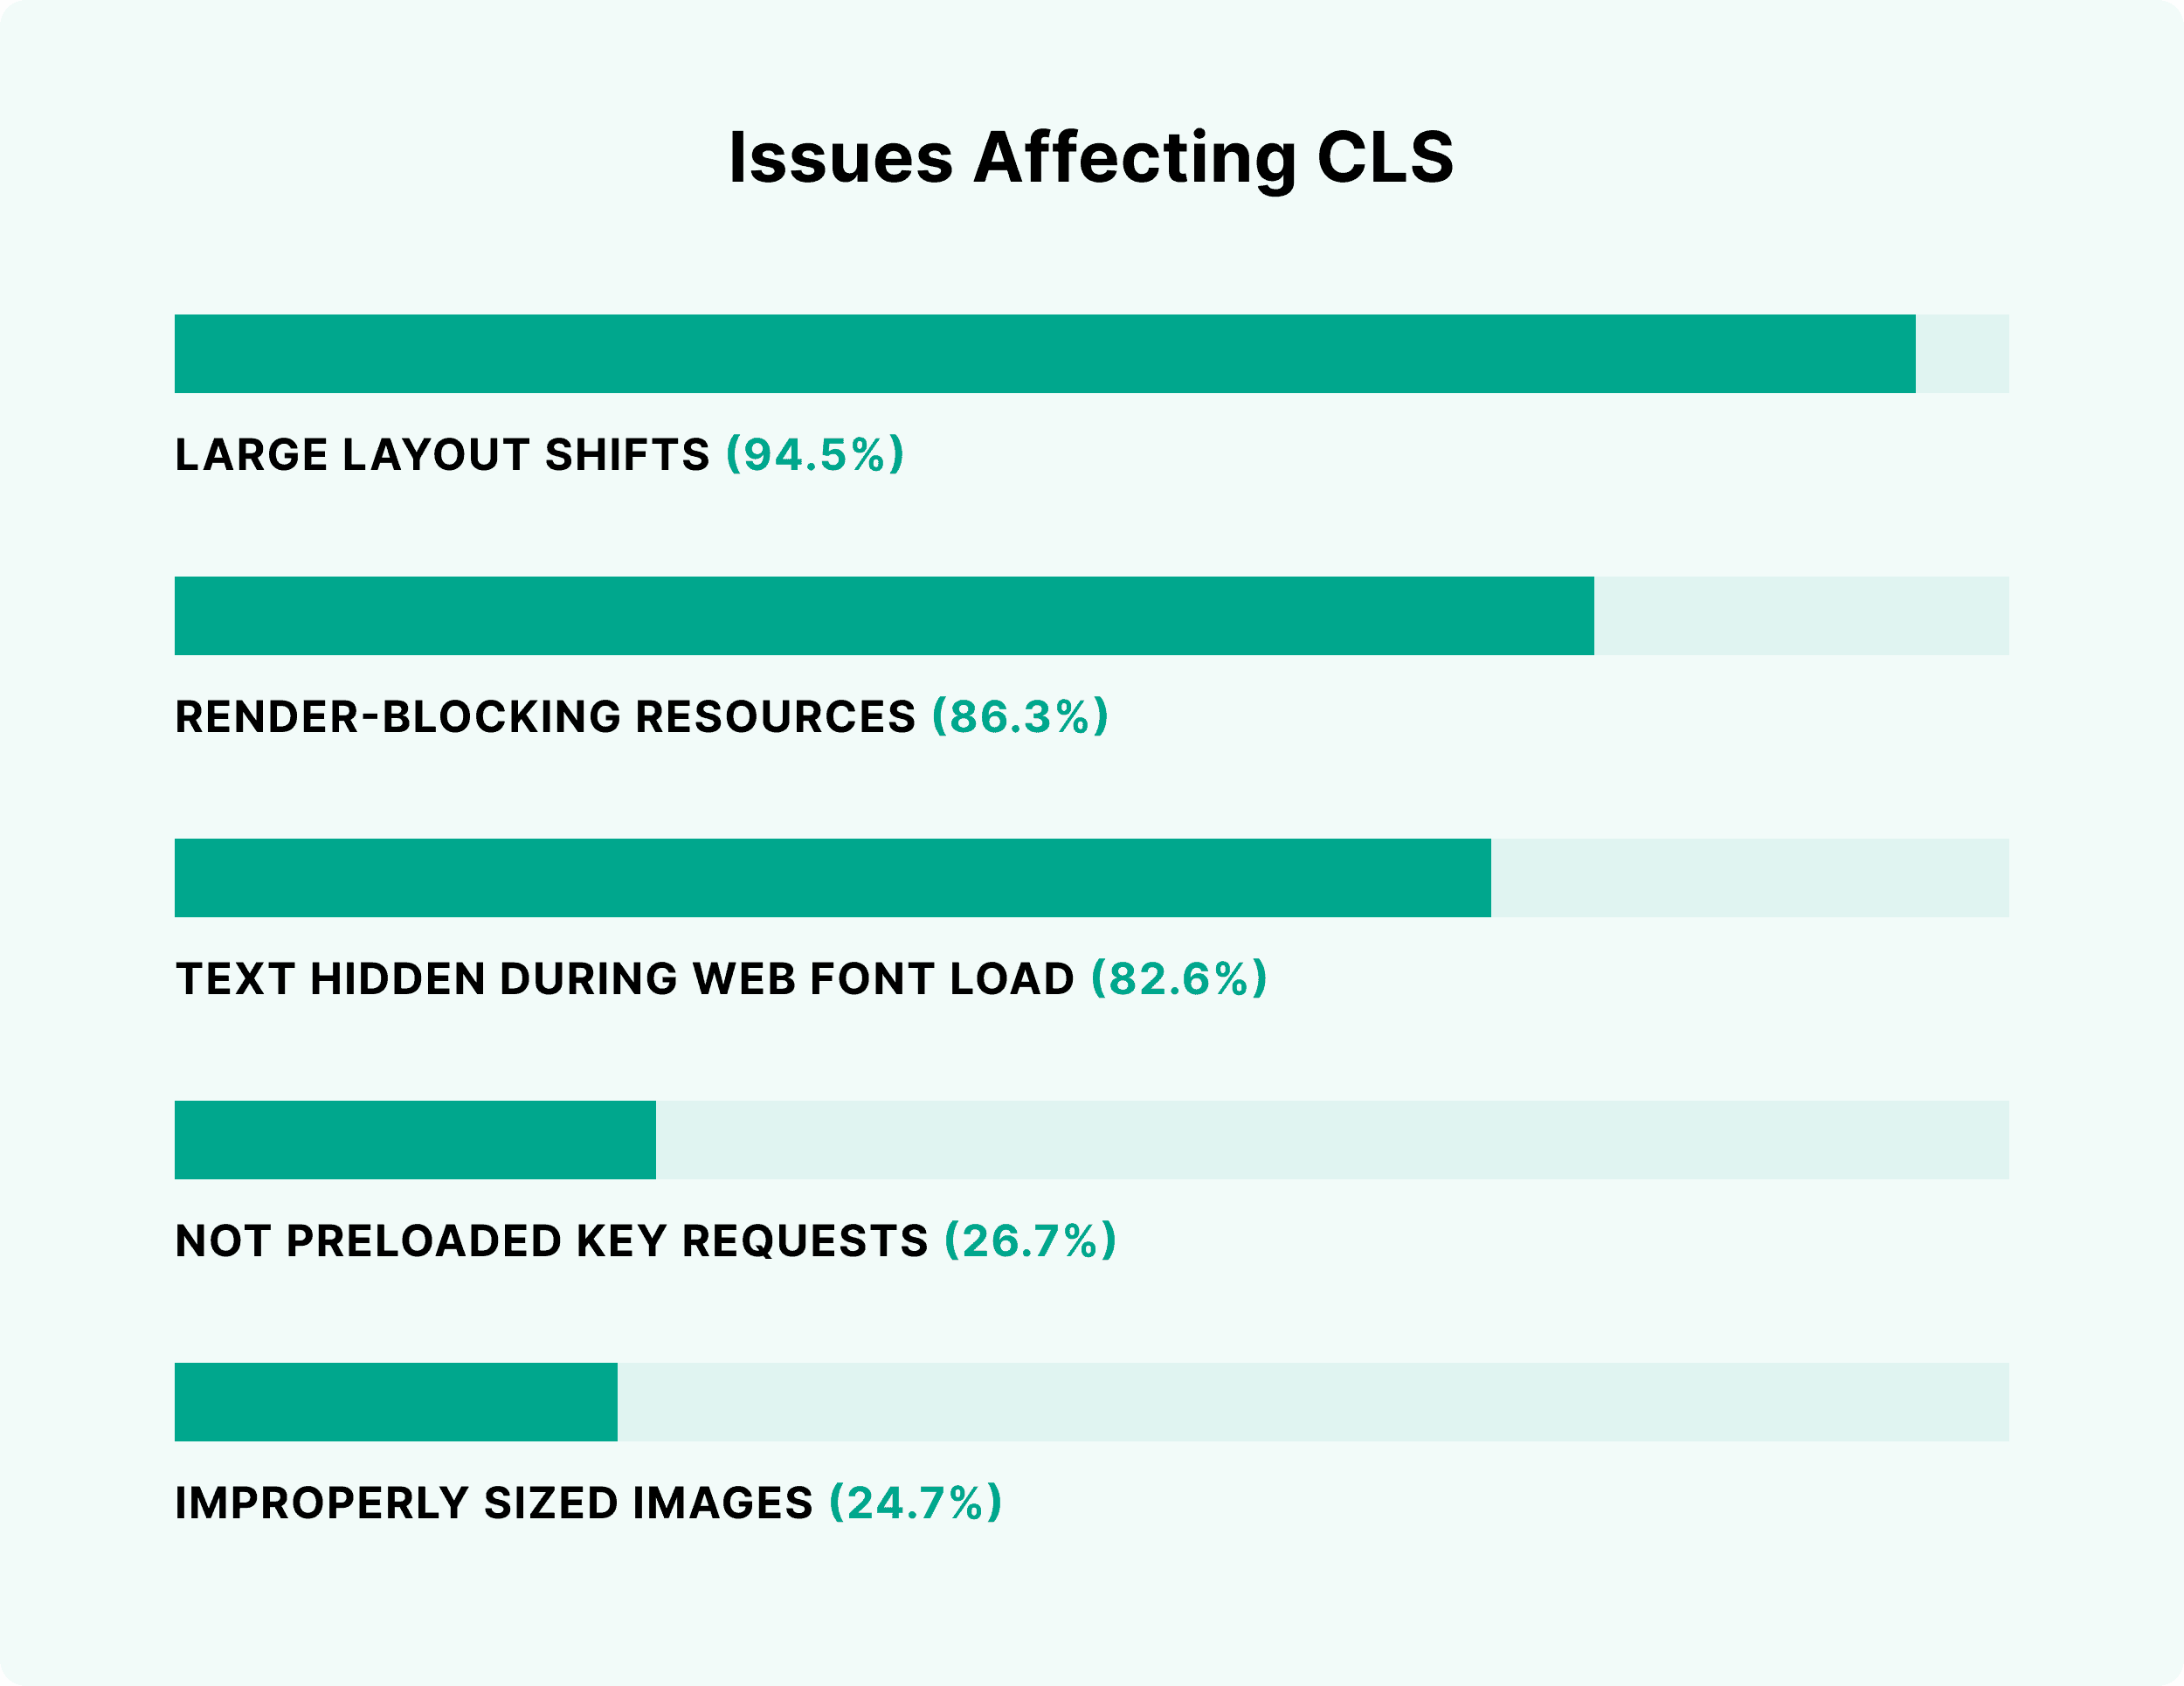 Issues affecting CLS